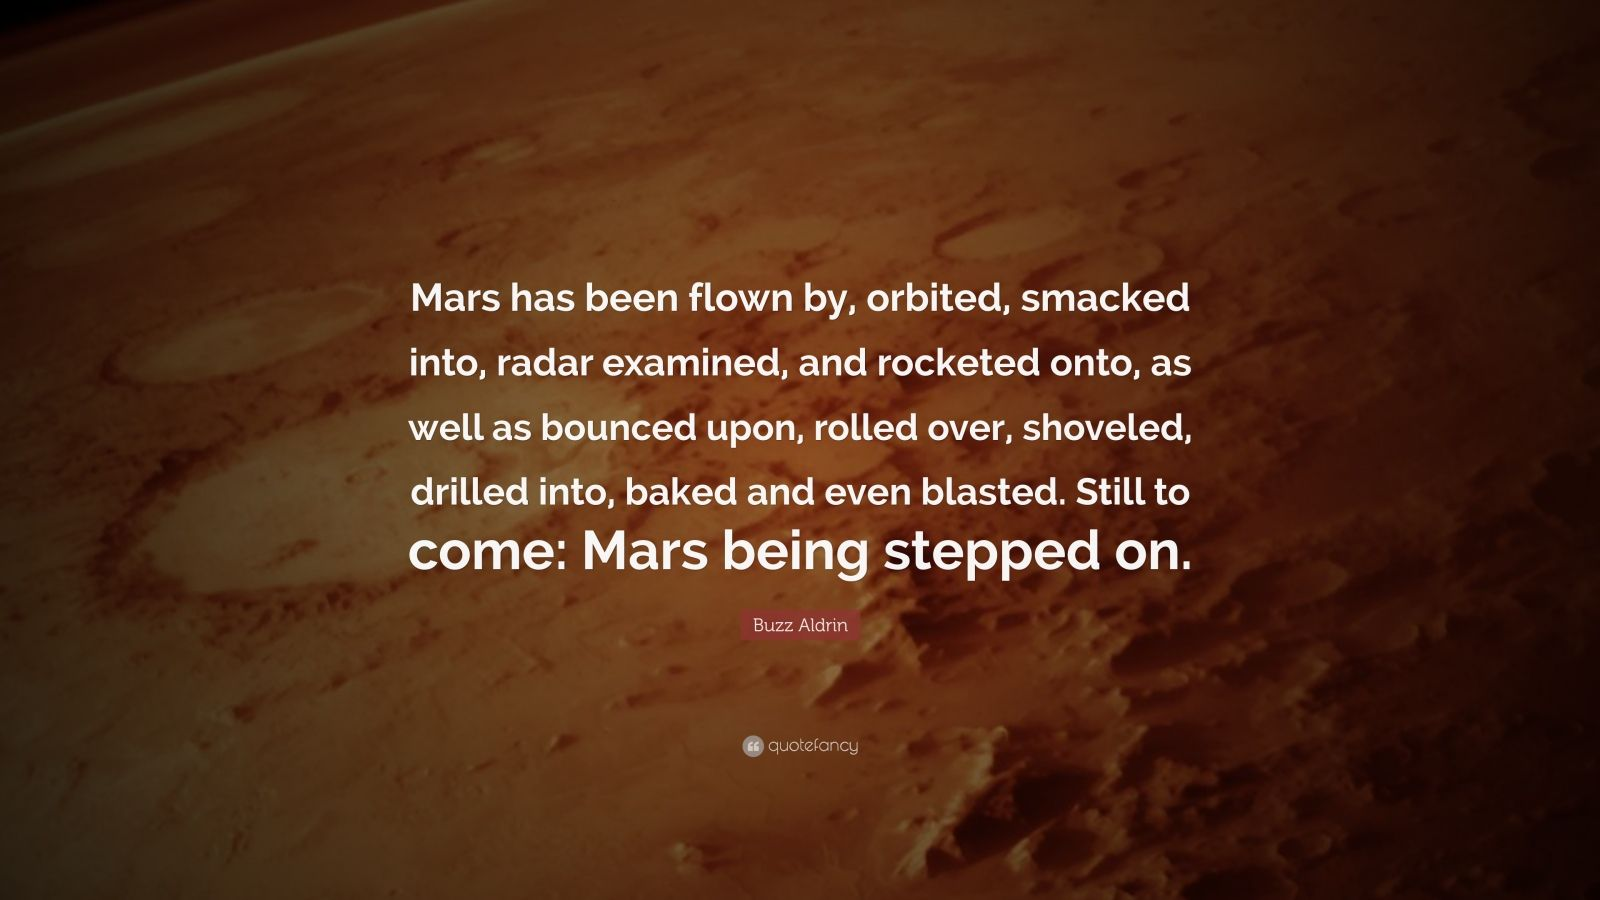 "Buzz Aldrin Quote: ""Mars has been flown by, orbited, smacked into, radar examined, and rocketed onto, as well as bounced upon, rolled over, shoveled, drilled into, baked and even blasted. Still to come: Mars being stepped on."""